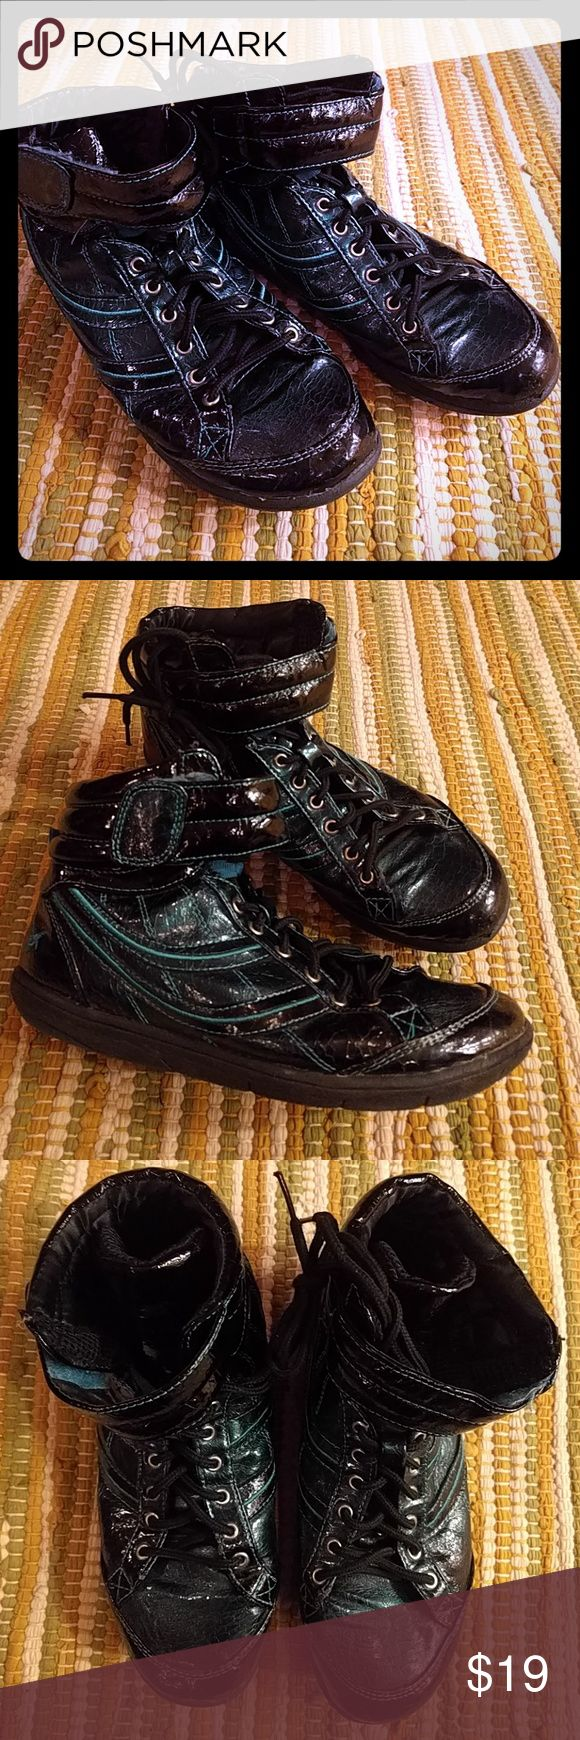 Chinese Laundry Edwina Blue High Tops Shiny black high top sneakers with iridescent blue accent. EUC. Super cool unique kicks! Chinese Laundry Shoes Sneakers